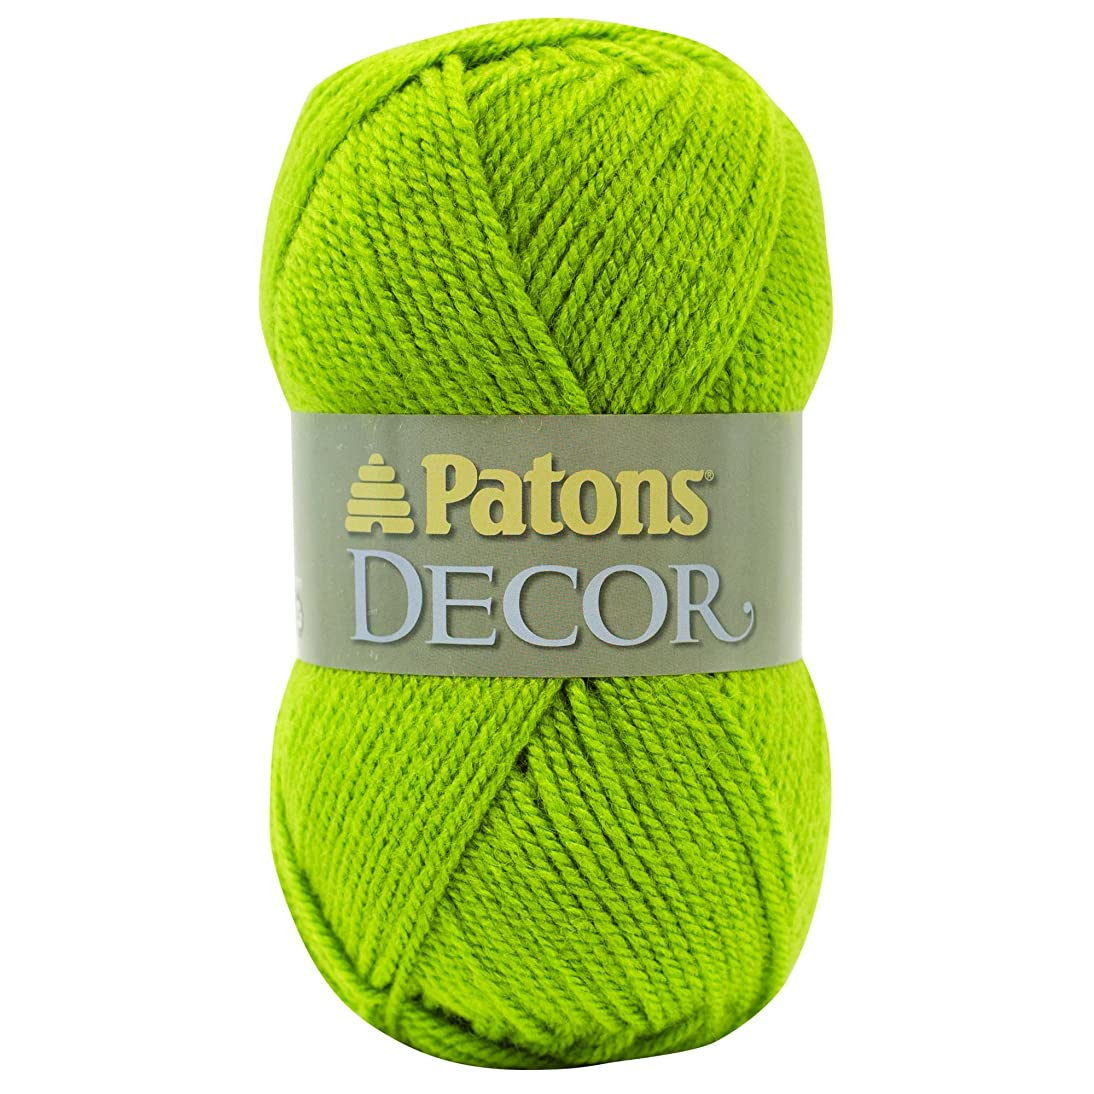 Patons  Decor Yarn - (4) Medium Worsted Gauge  - 3.5oz -  Frond -   For Crochet, Knitting & Crafting